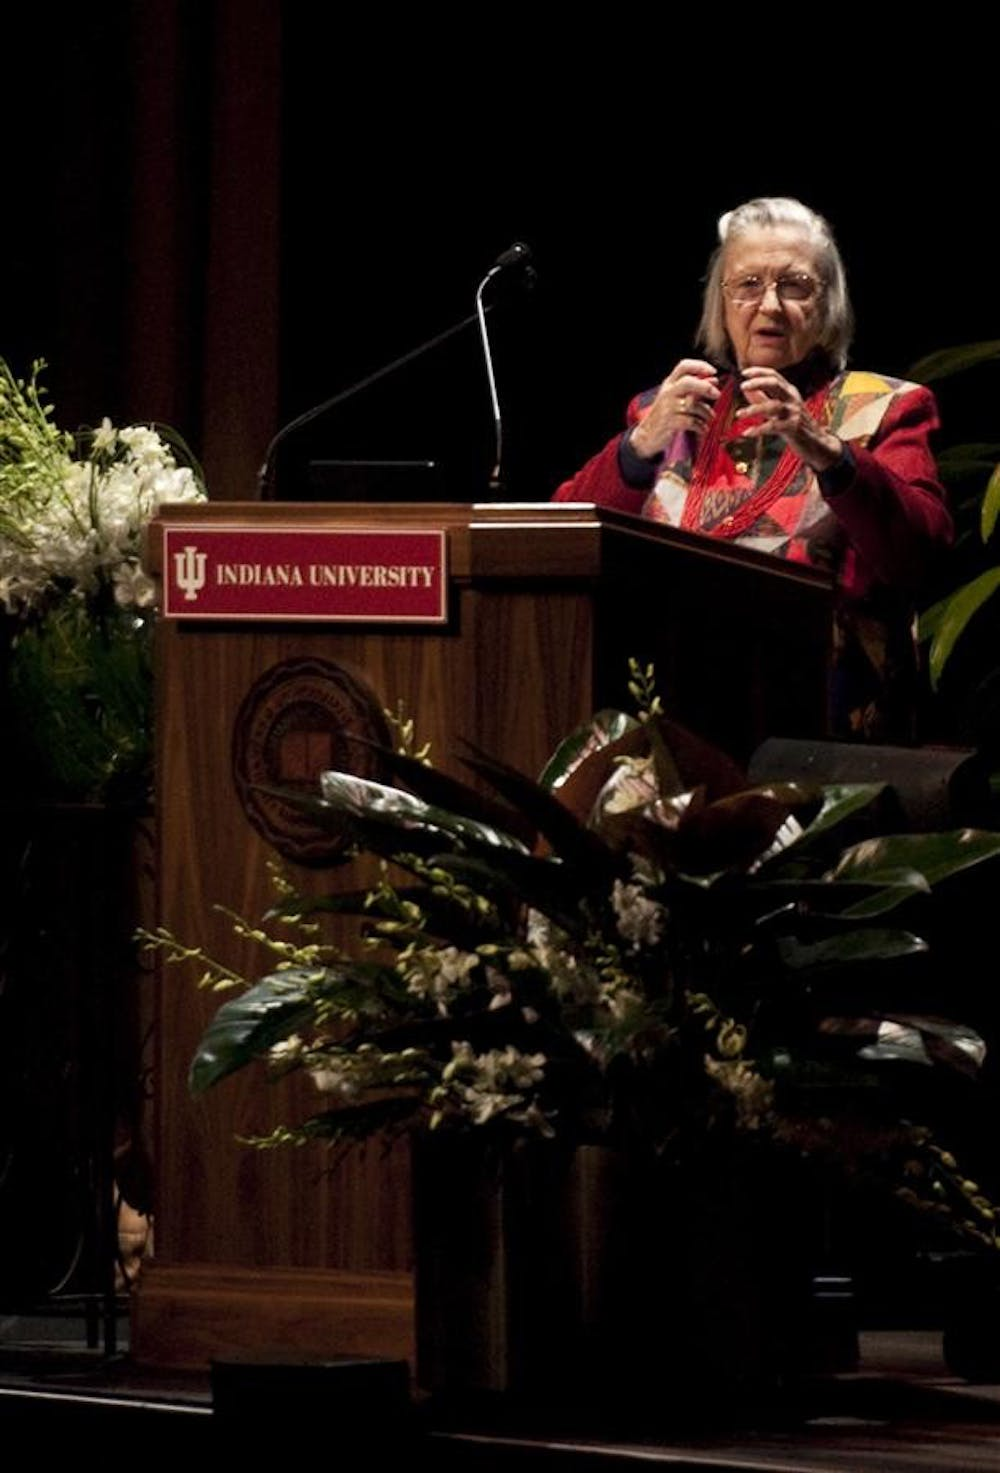 Distinguished Professor Elinor Ostrom presents an updated version of her Nobel Prize lecture to an audience Feb. 16, 2010, at the IU Auditorium in Bloomington, Ind. Ostrom is the University's eighth Nobel Prize recipient.